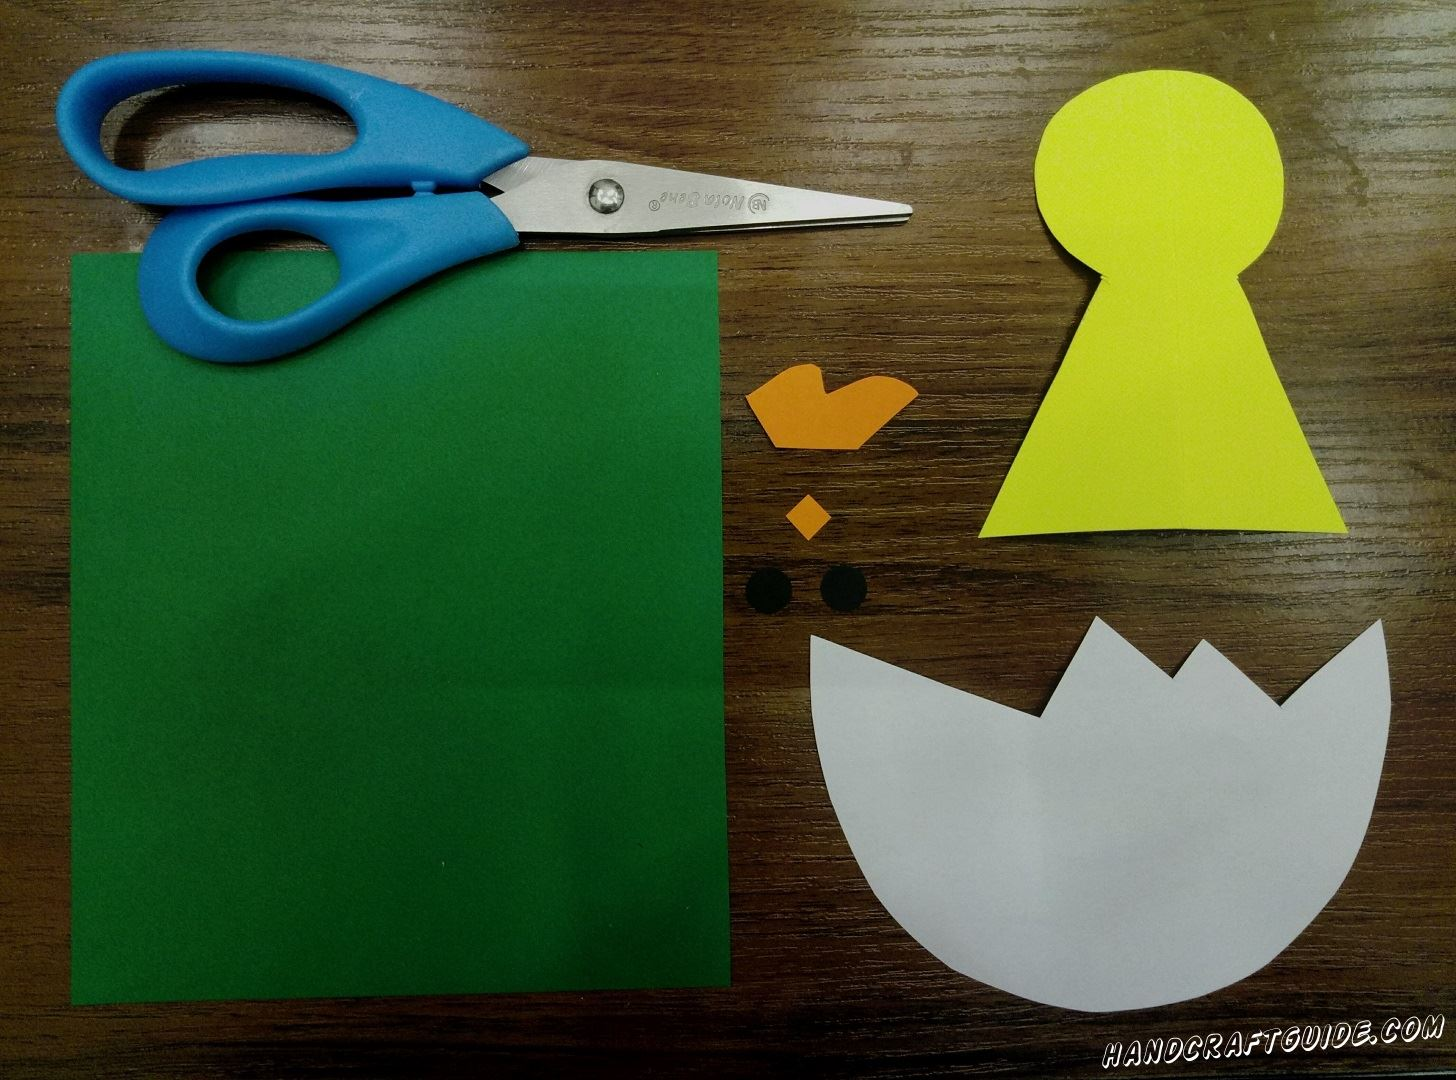 First, let's cut out the needed details. Take yellow sheet of paper and cut out a figure similar to a keyhole, on top it's a circle with triangle beneath. Use white paper to make an eggshell. To do this, cut out a semicircle and make sharp edges on the flat side. Cut a comb and a small square out of orange paper. The last one cut out 2 small circles and take a green paper for the background.